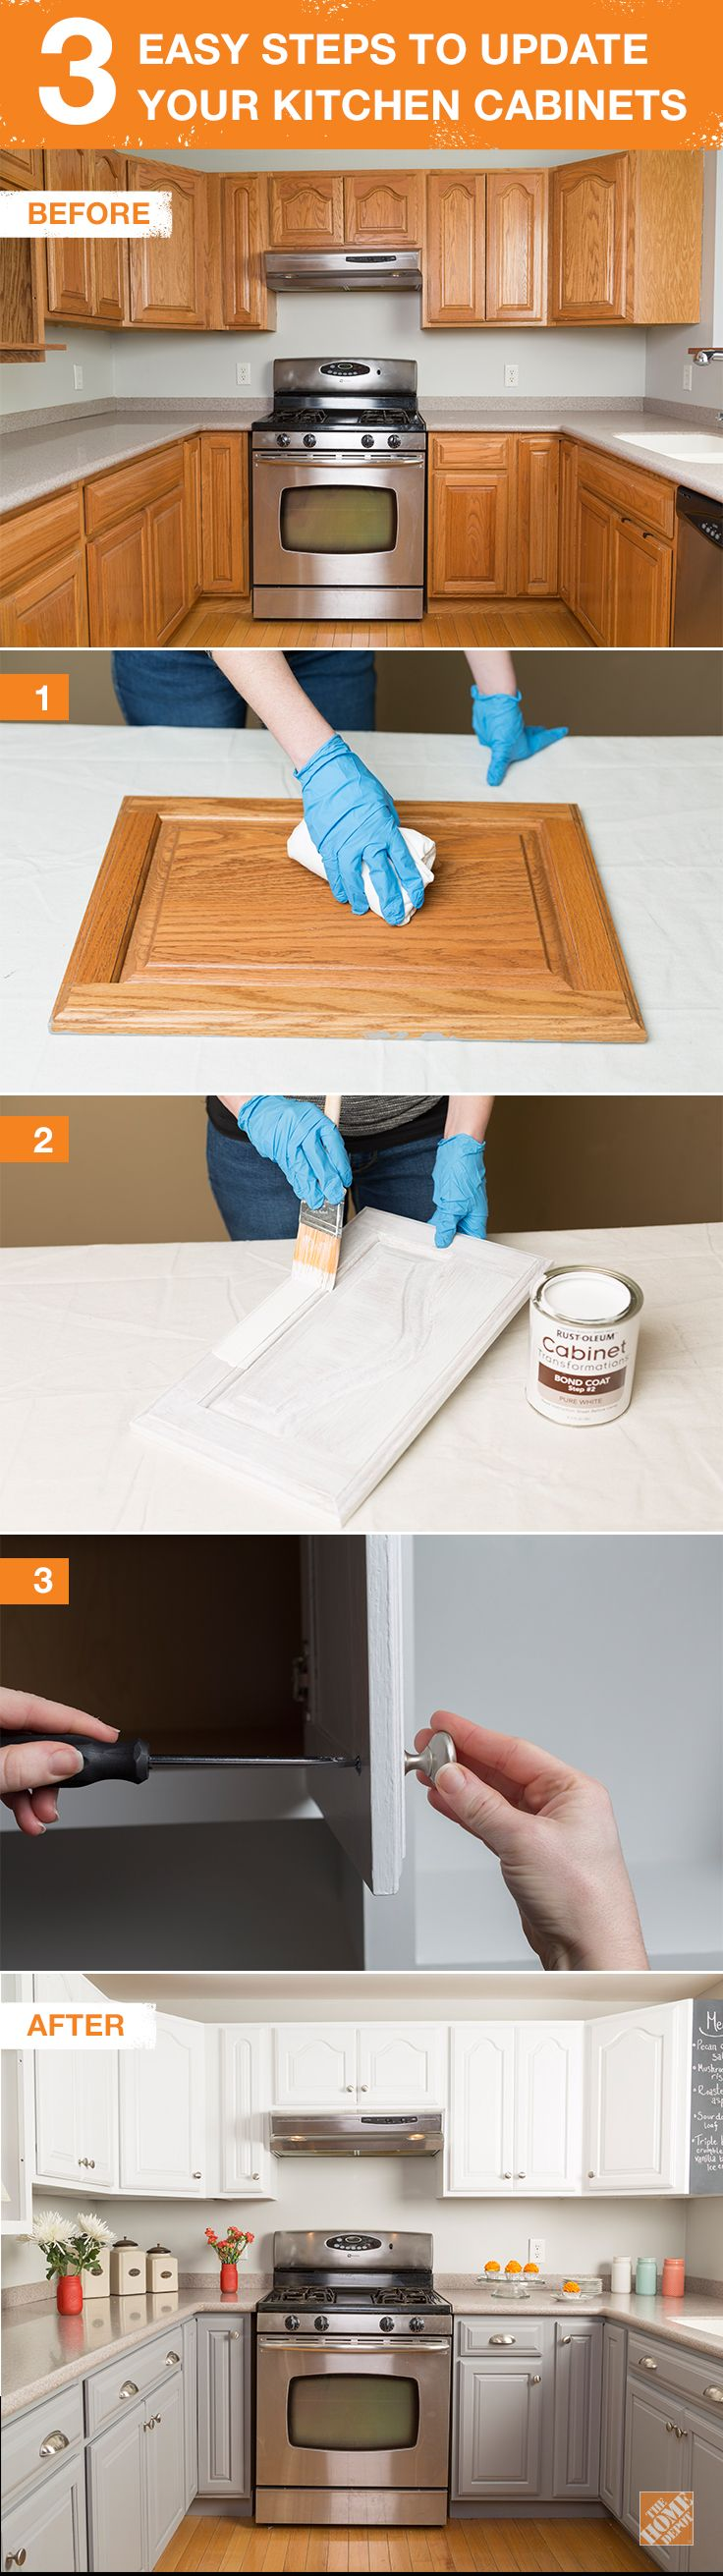 new kitchen cabinets Get the Look of New Kitchen Cabinets the Easy Way